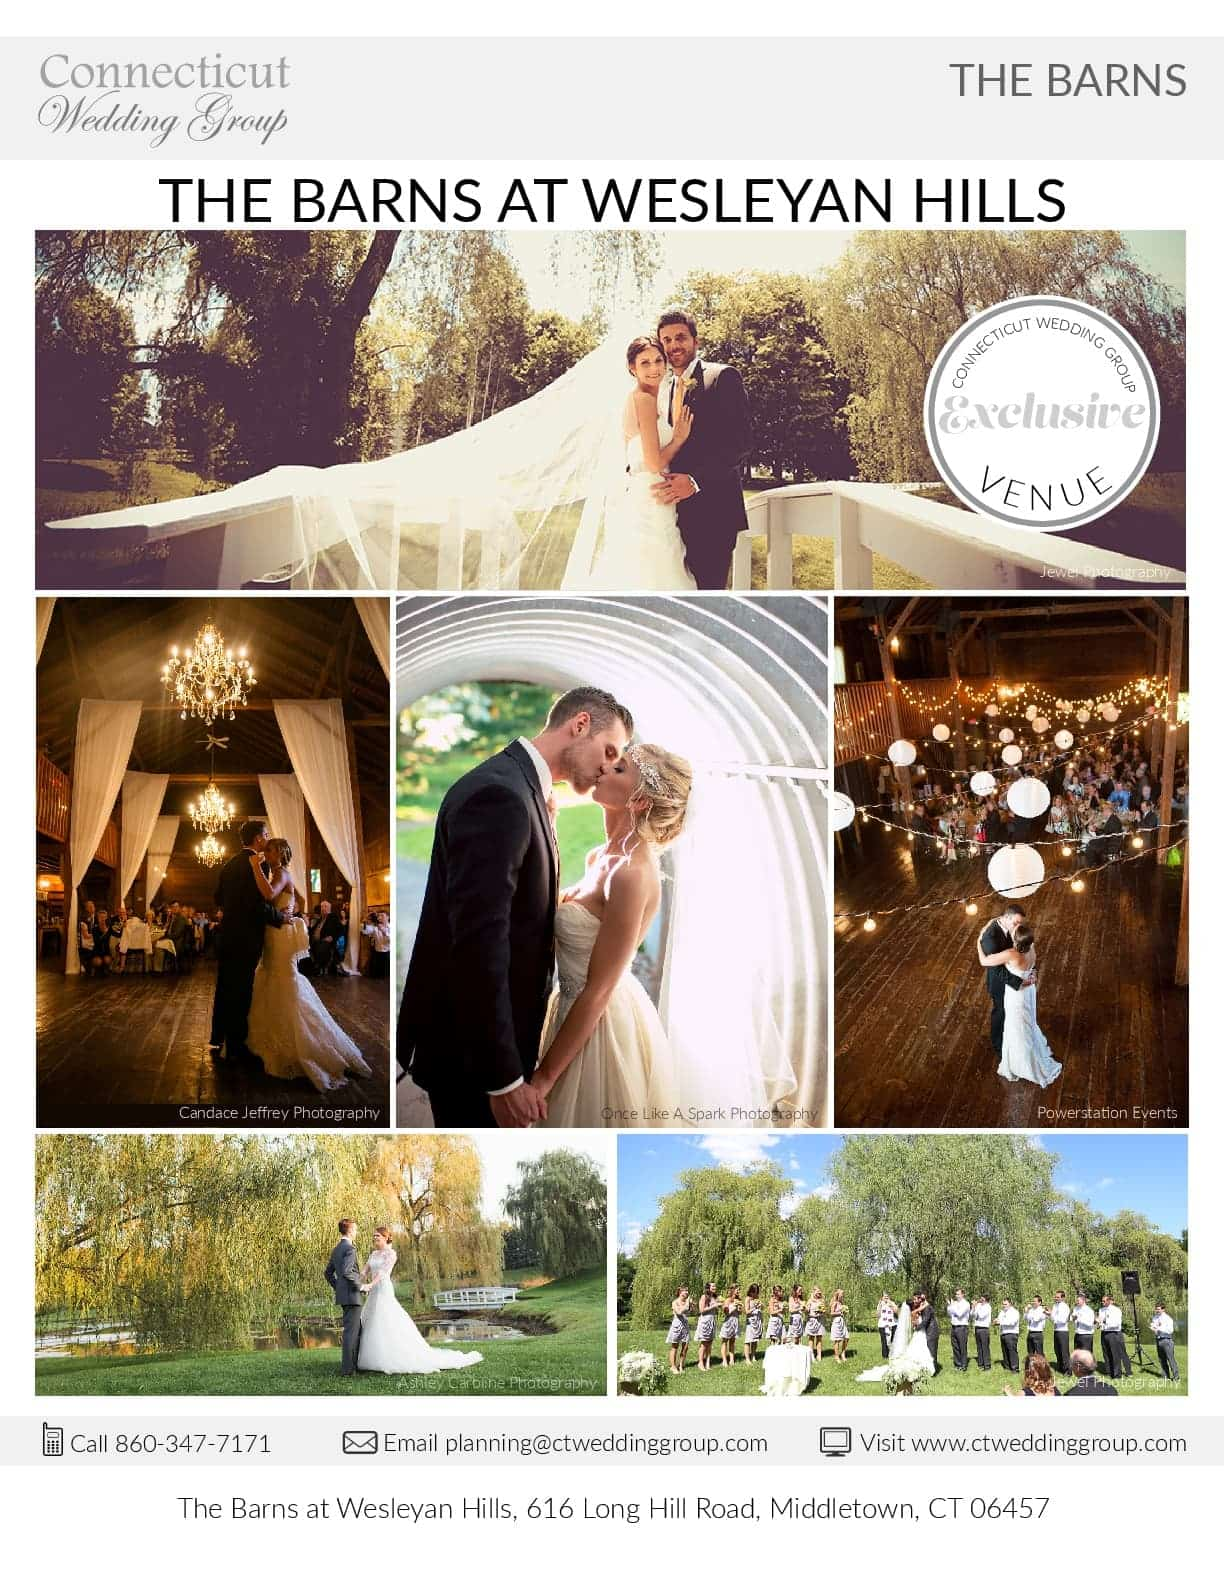 117_15311_Barns-at-Wesleyan-Hills-Signature-Wedding-Package_2017-001-min